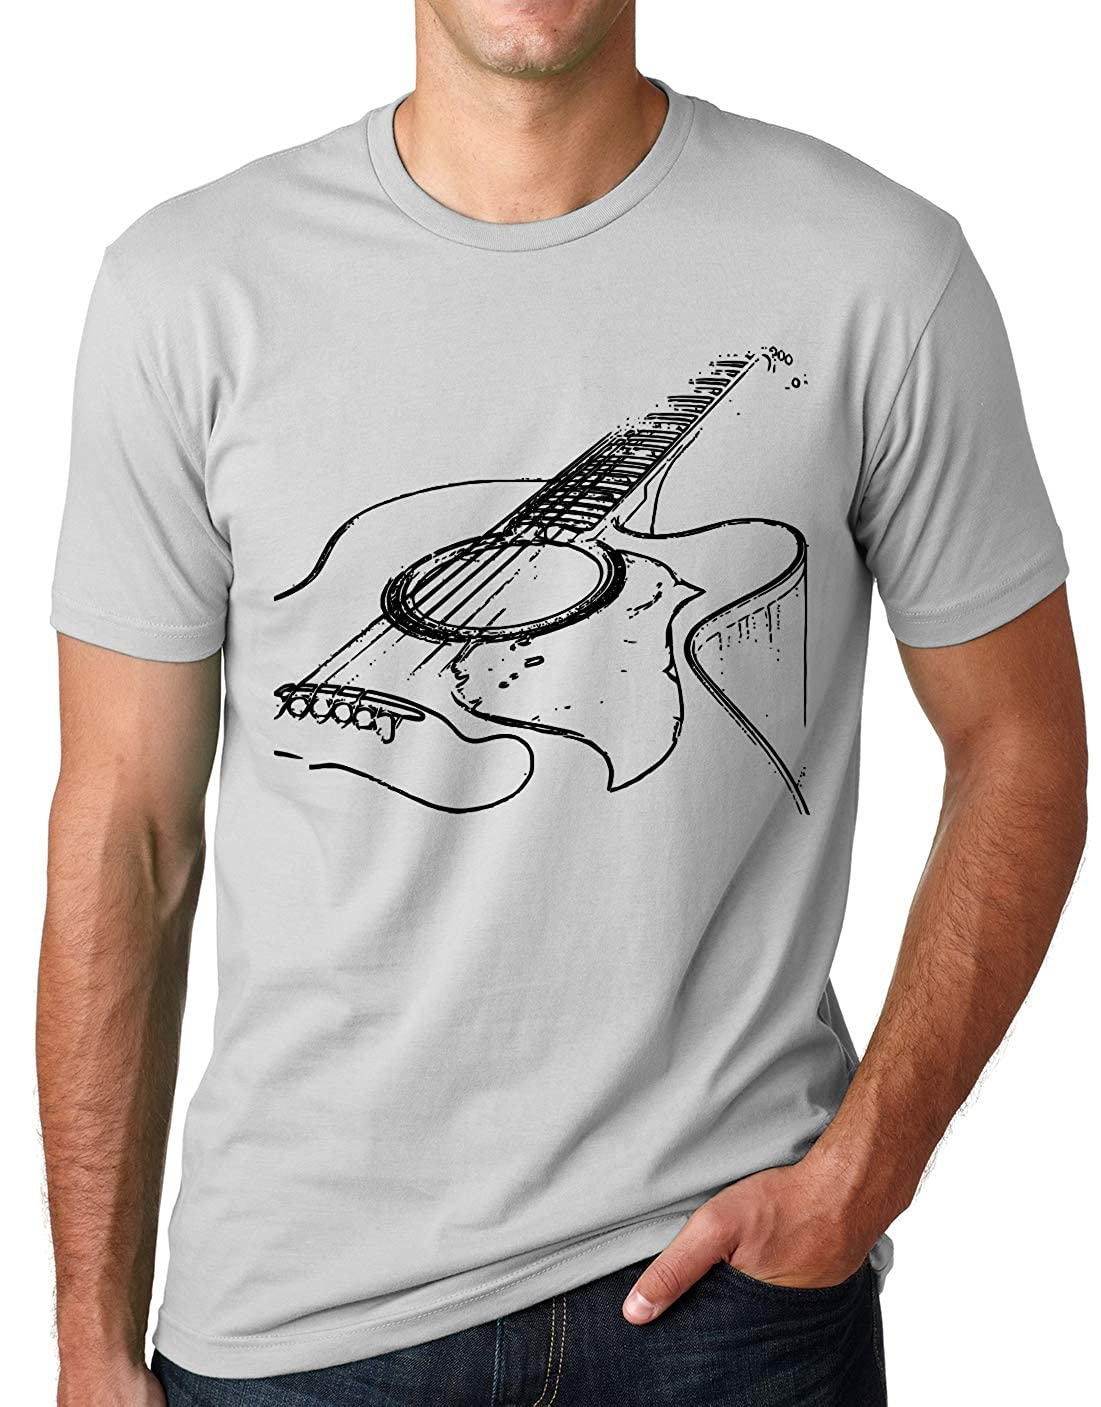 Think Out Loud Apparel Acoustic Guitar Shirt Cool Musician Tee T Shirt